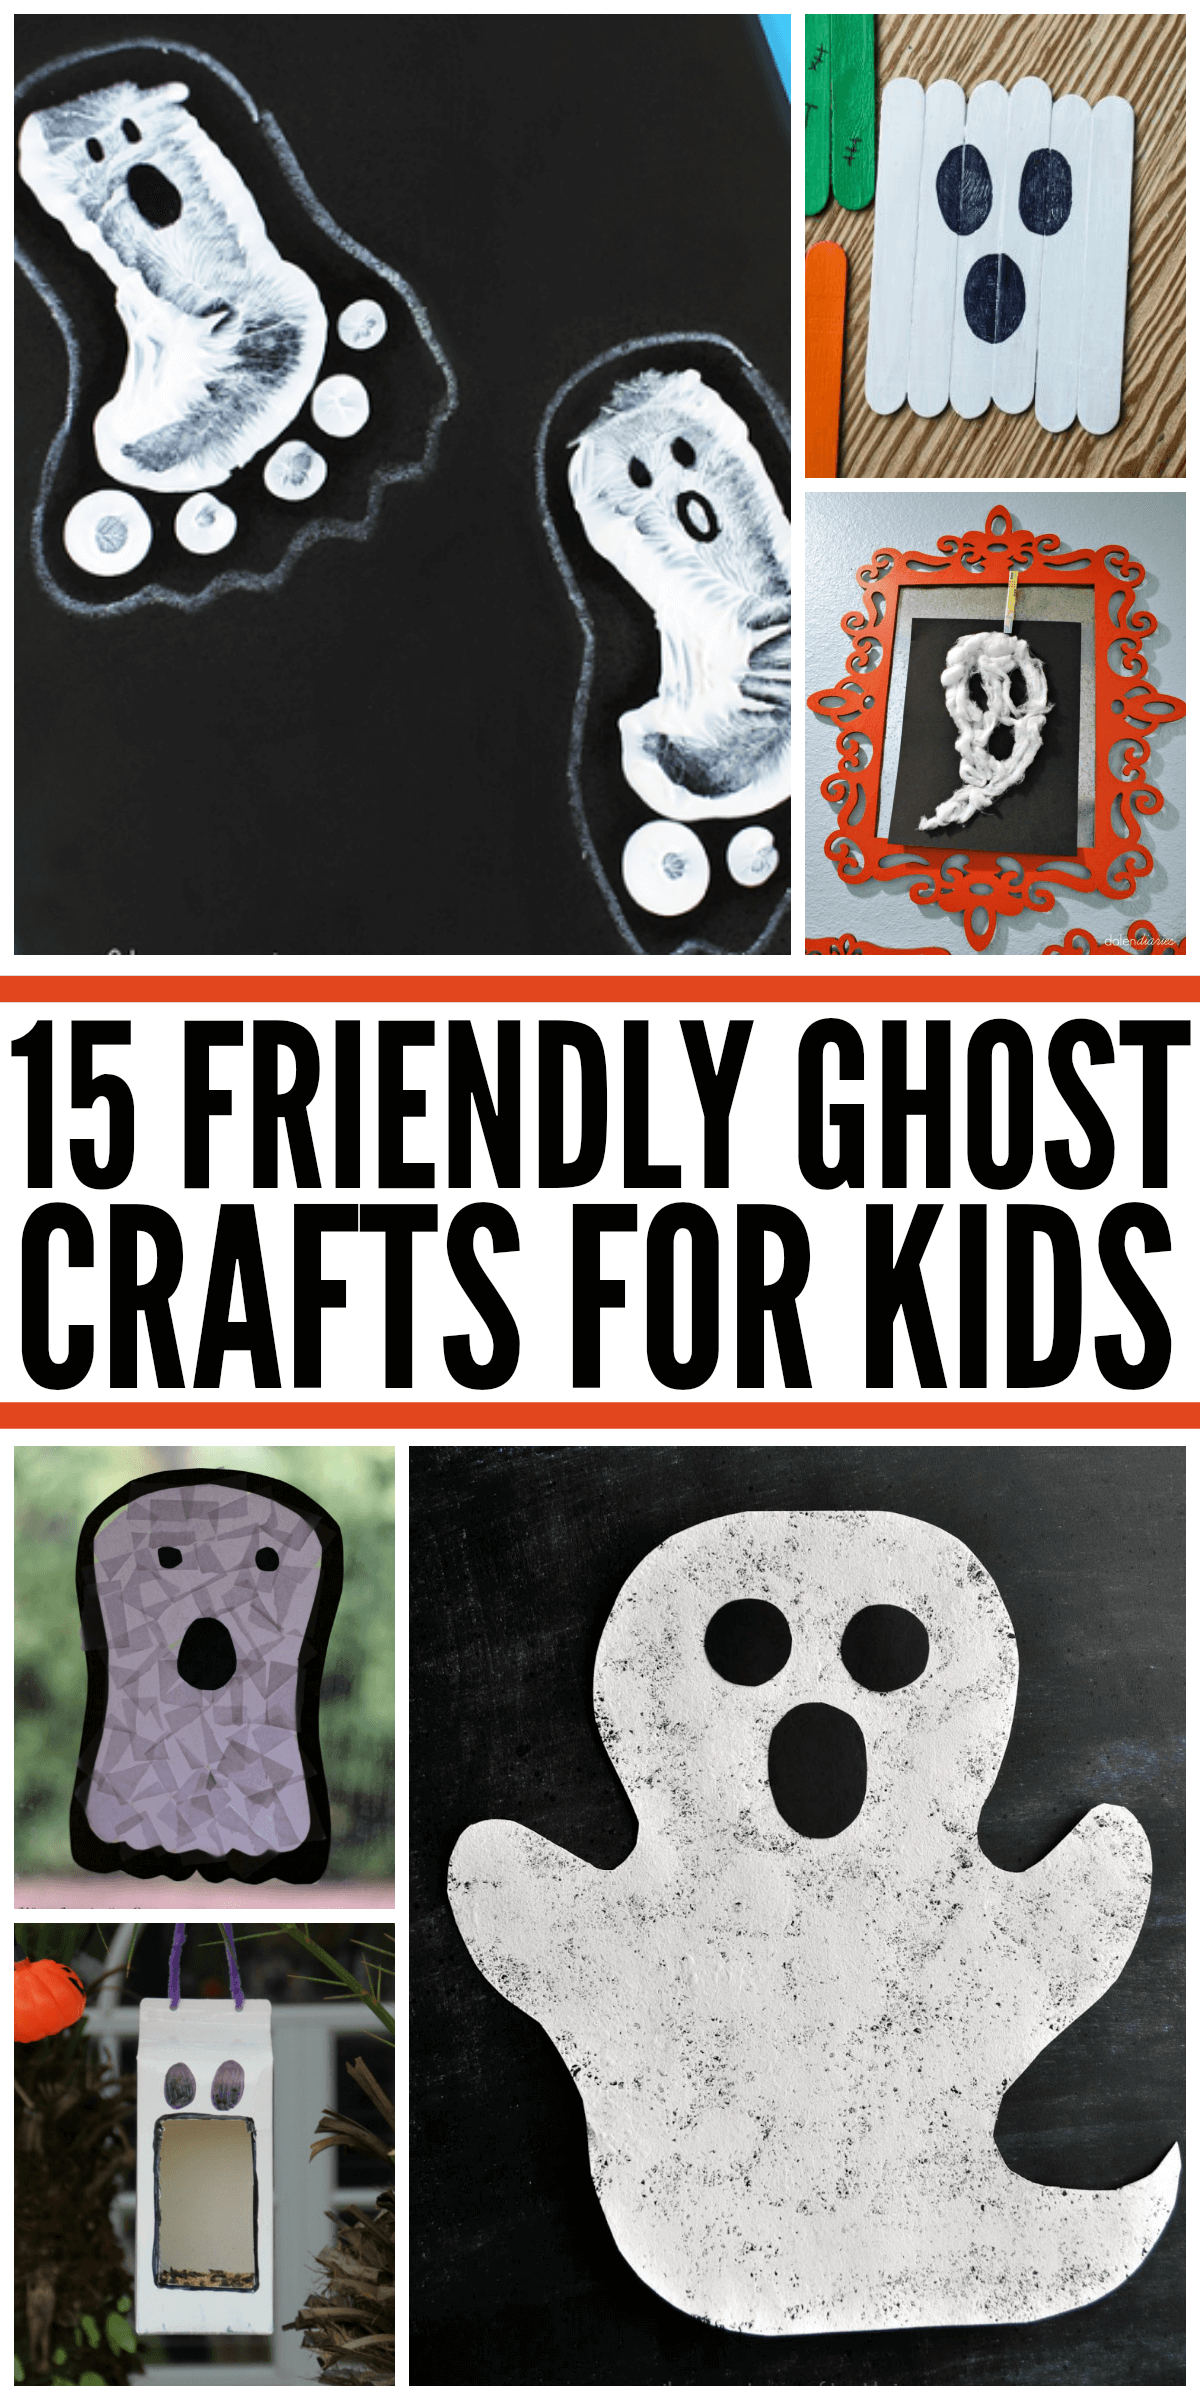 15 Friendly Ghost Crafts for Kids - In The Playroom